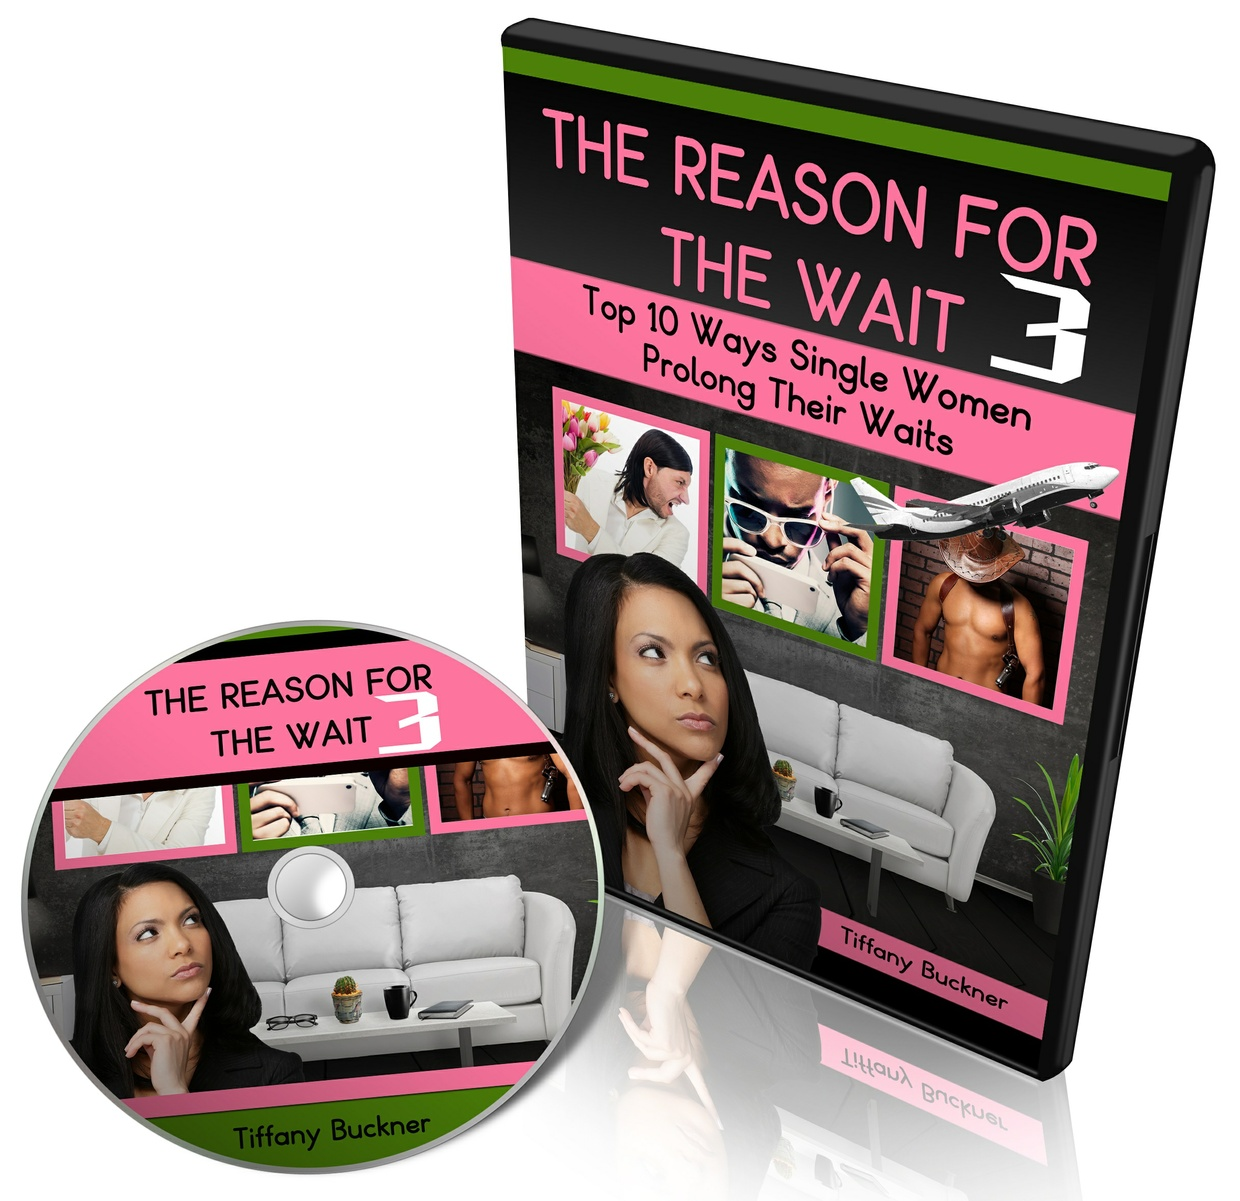 The Reason for the Wait Part 3: Top 10 Ways Single Women Prolong Their Waits